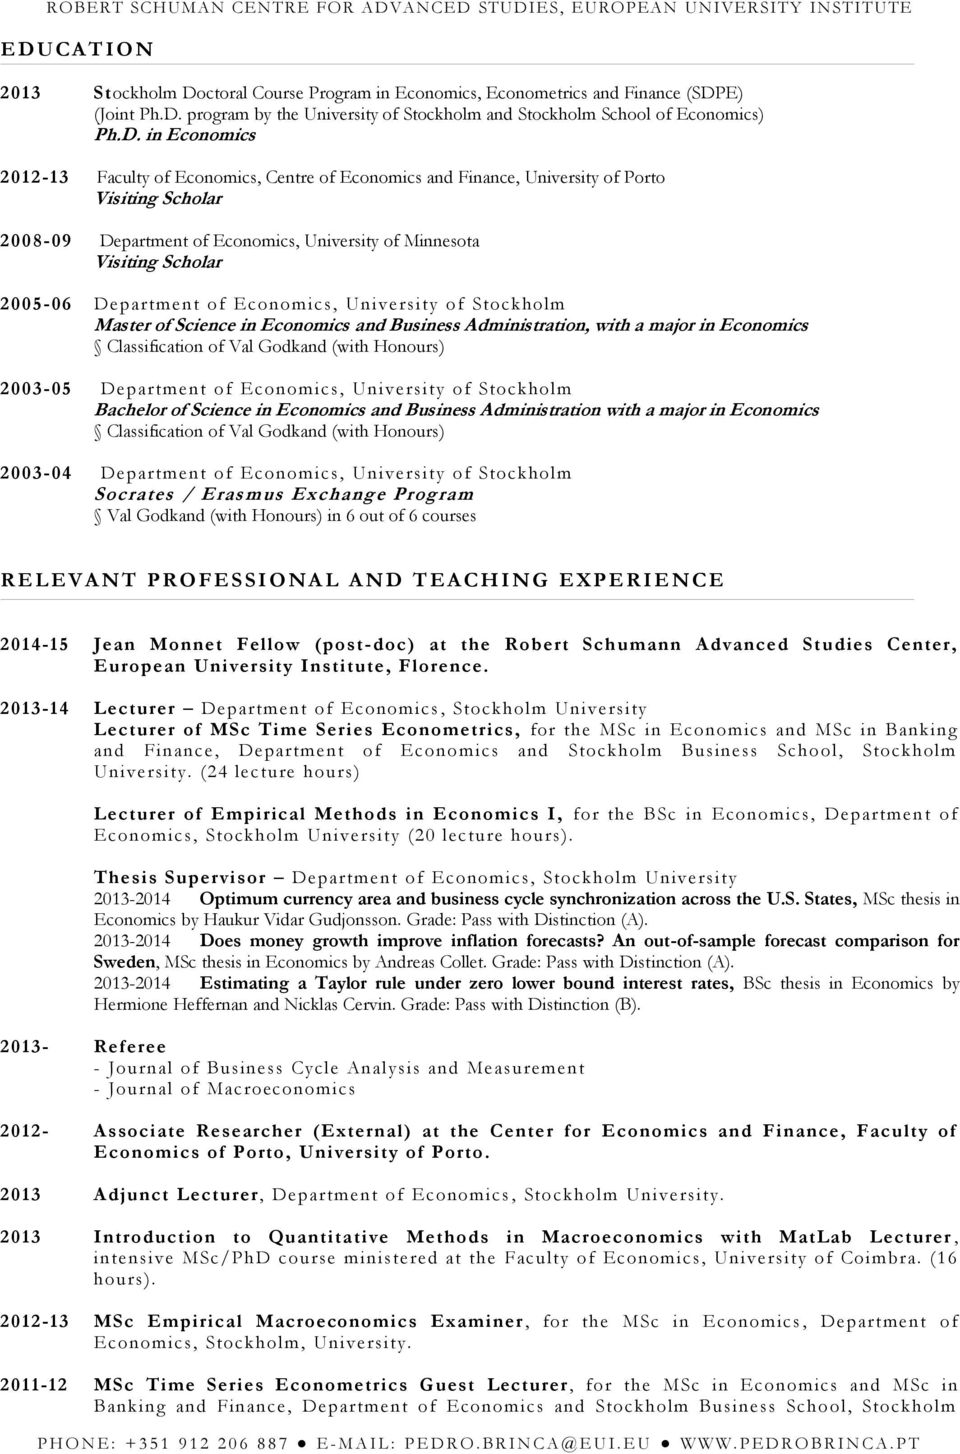 Department of Economics, University of Stockholm Master of Science in Economics and Business Administration, with a major in Economics Classification of Val Godkand (with Honours) 2003-05 Department